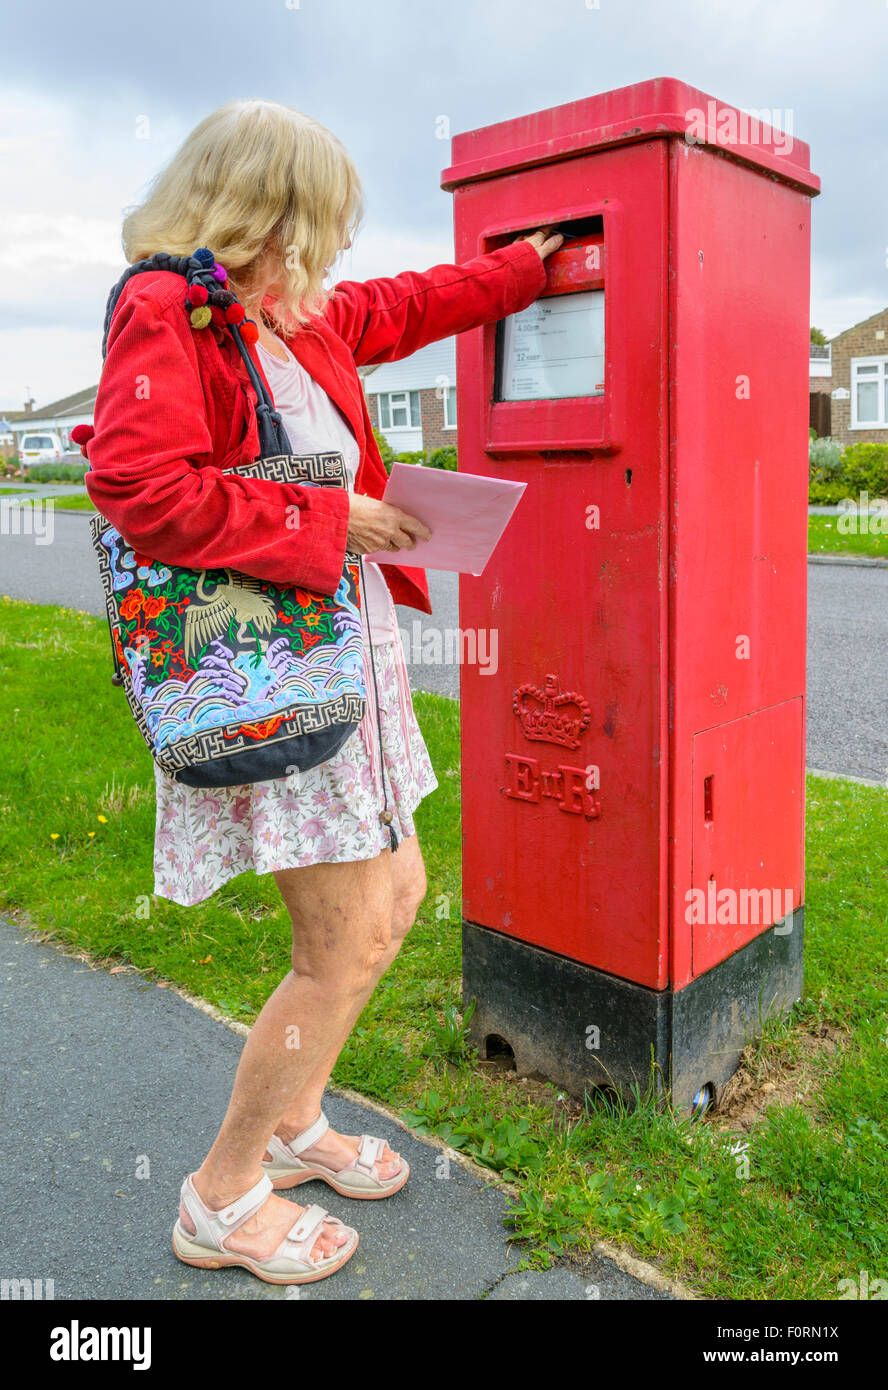 Middle aged woman posting a letter in a red rectangular letter box in England, UK. Stock Photo